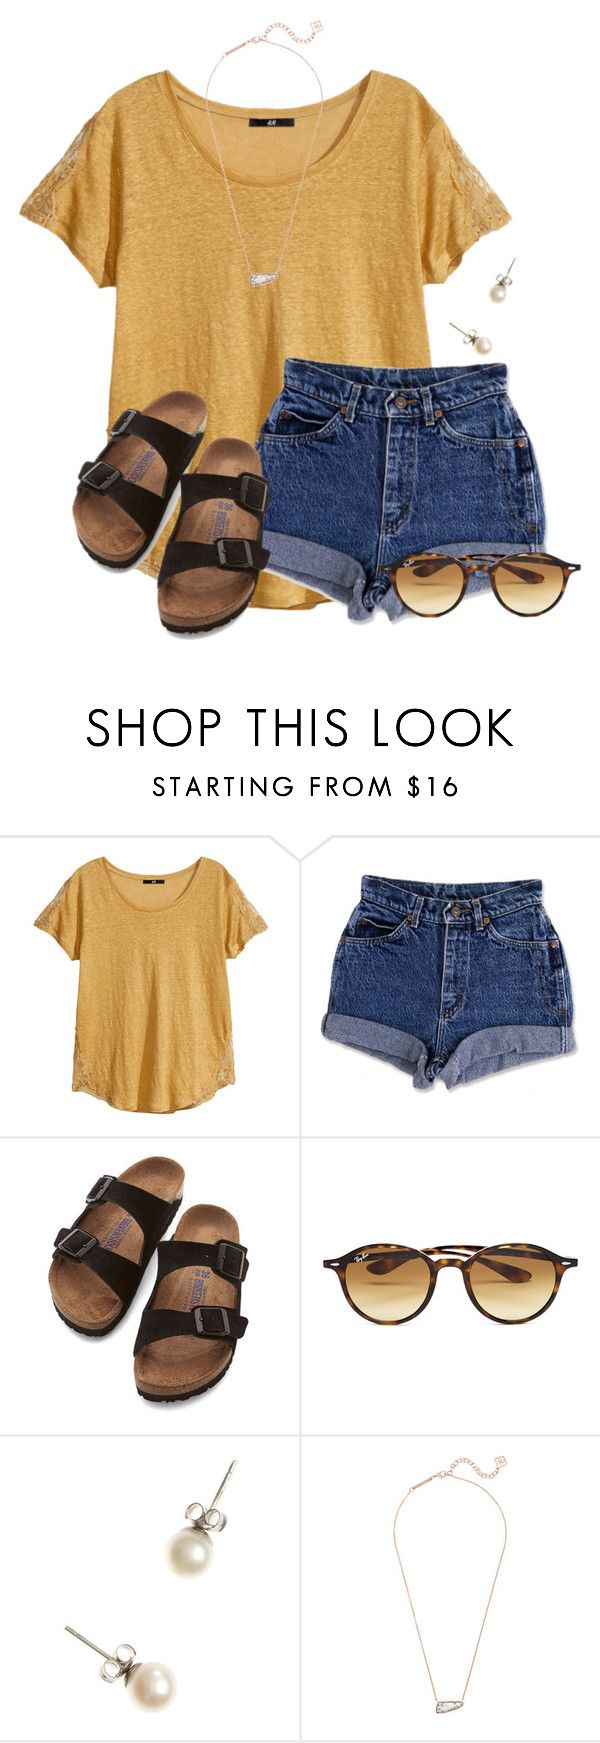 """QOTD: What are you doing for Valentine's Day?"" by flroasburn on Polyvore featuring H&M, Birkenstock, Ray-Ban, J.Crew and Kendra Scott"